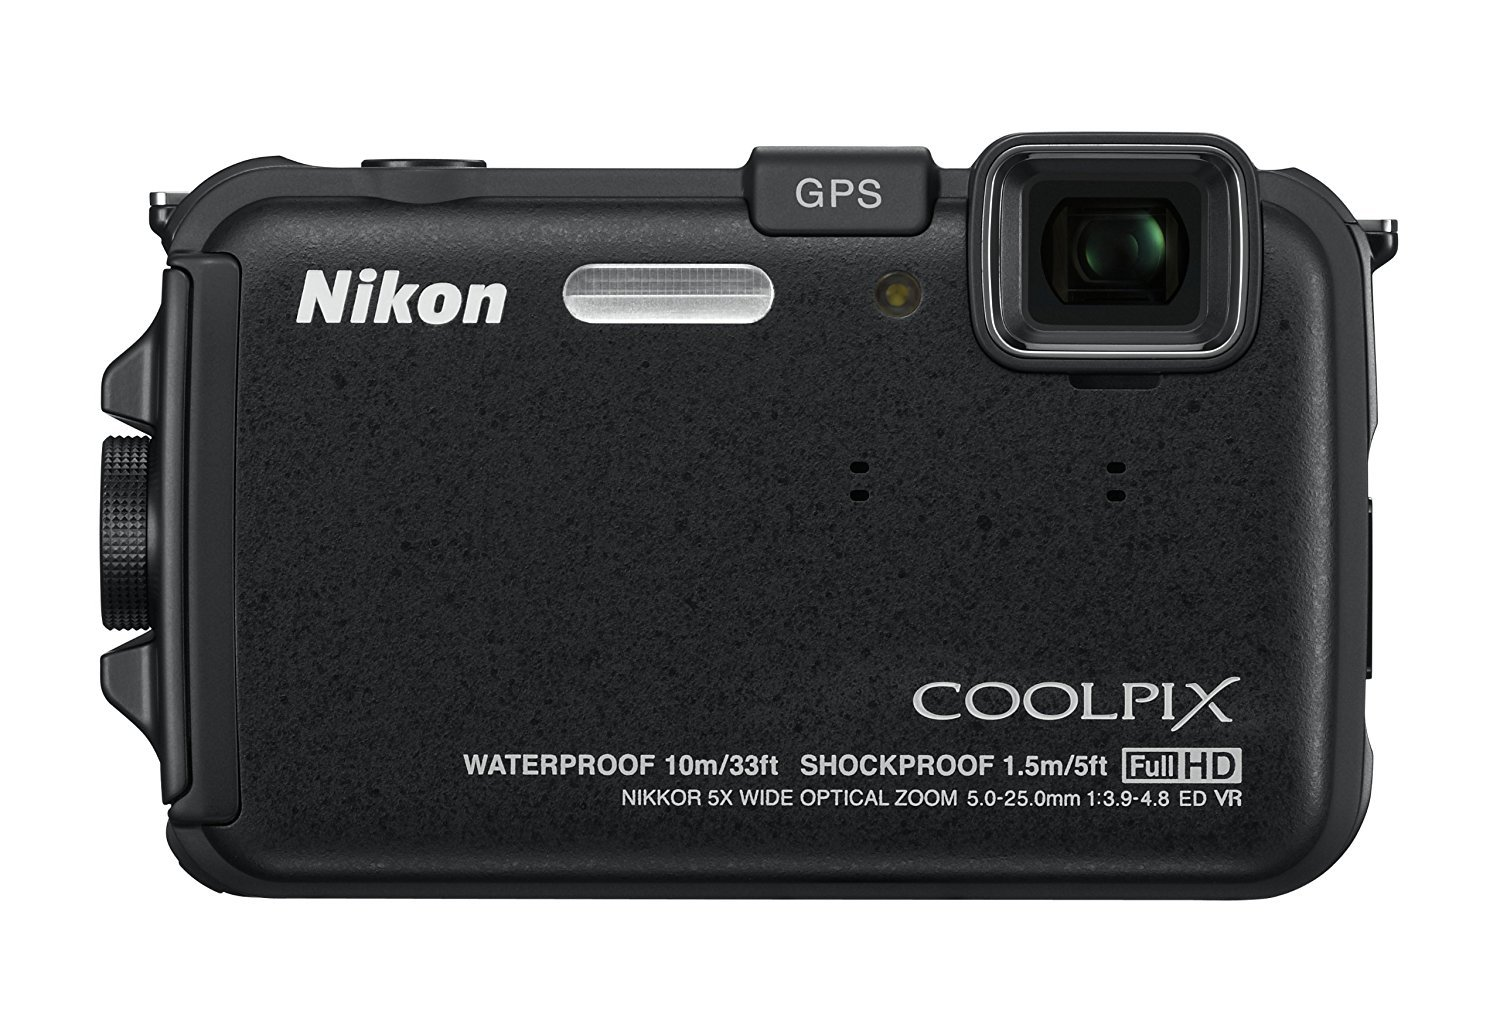 Nikon Coolpix SW100 (GPS water proof 10m)